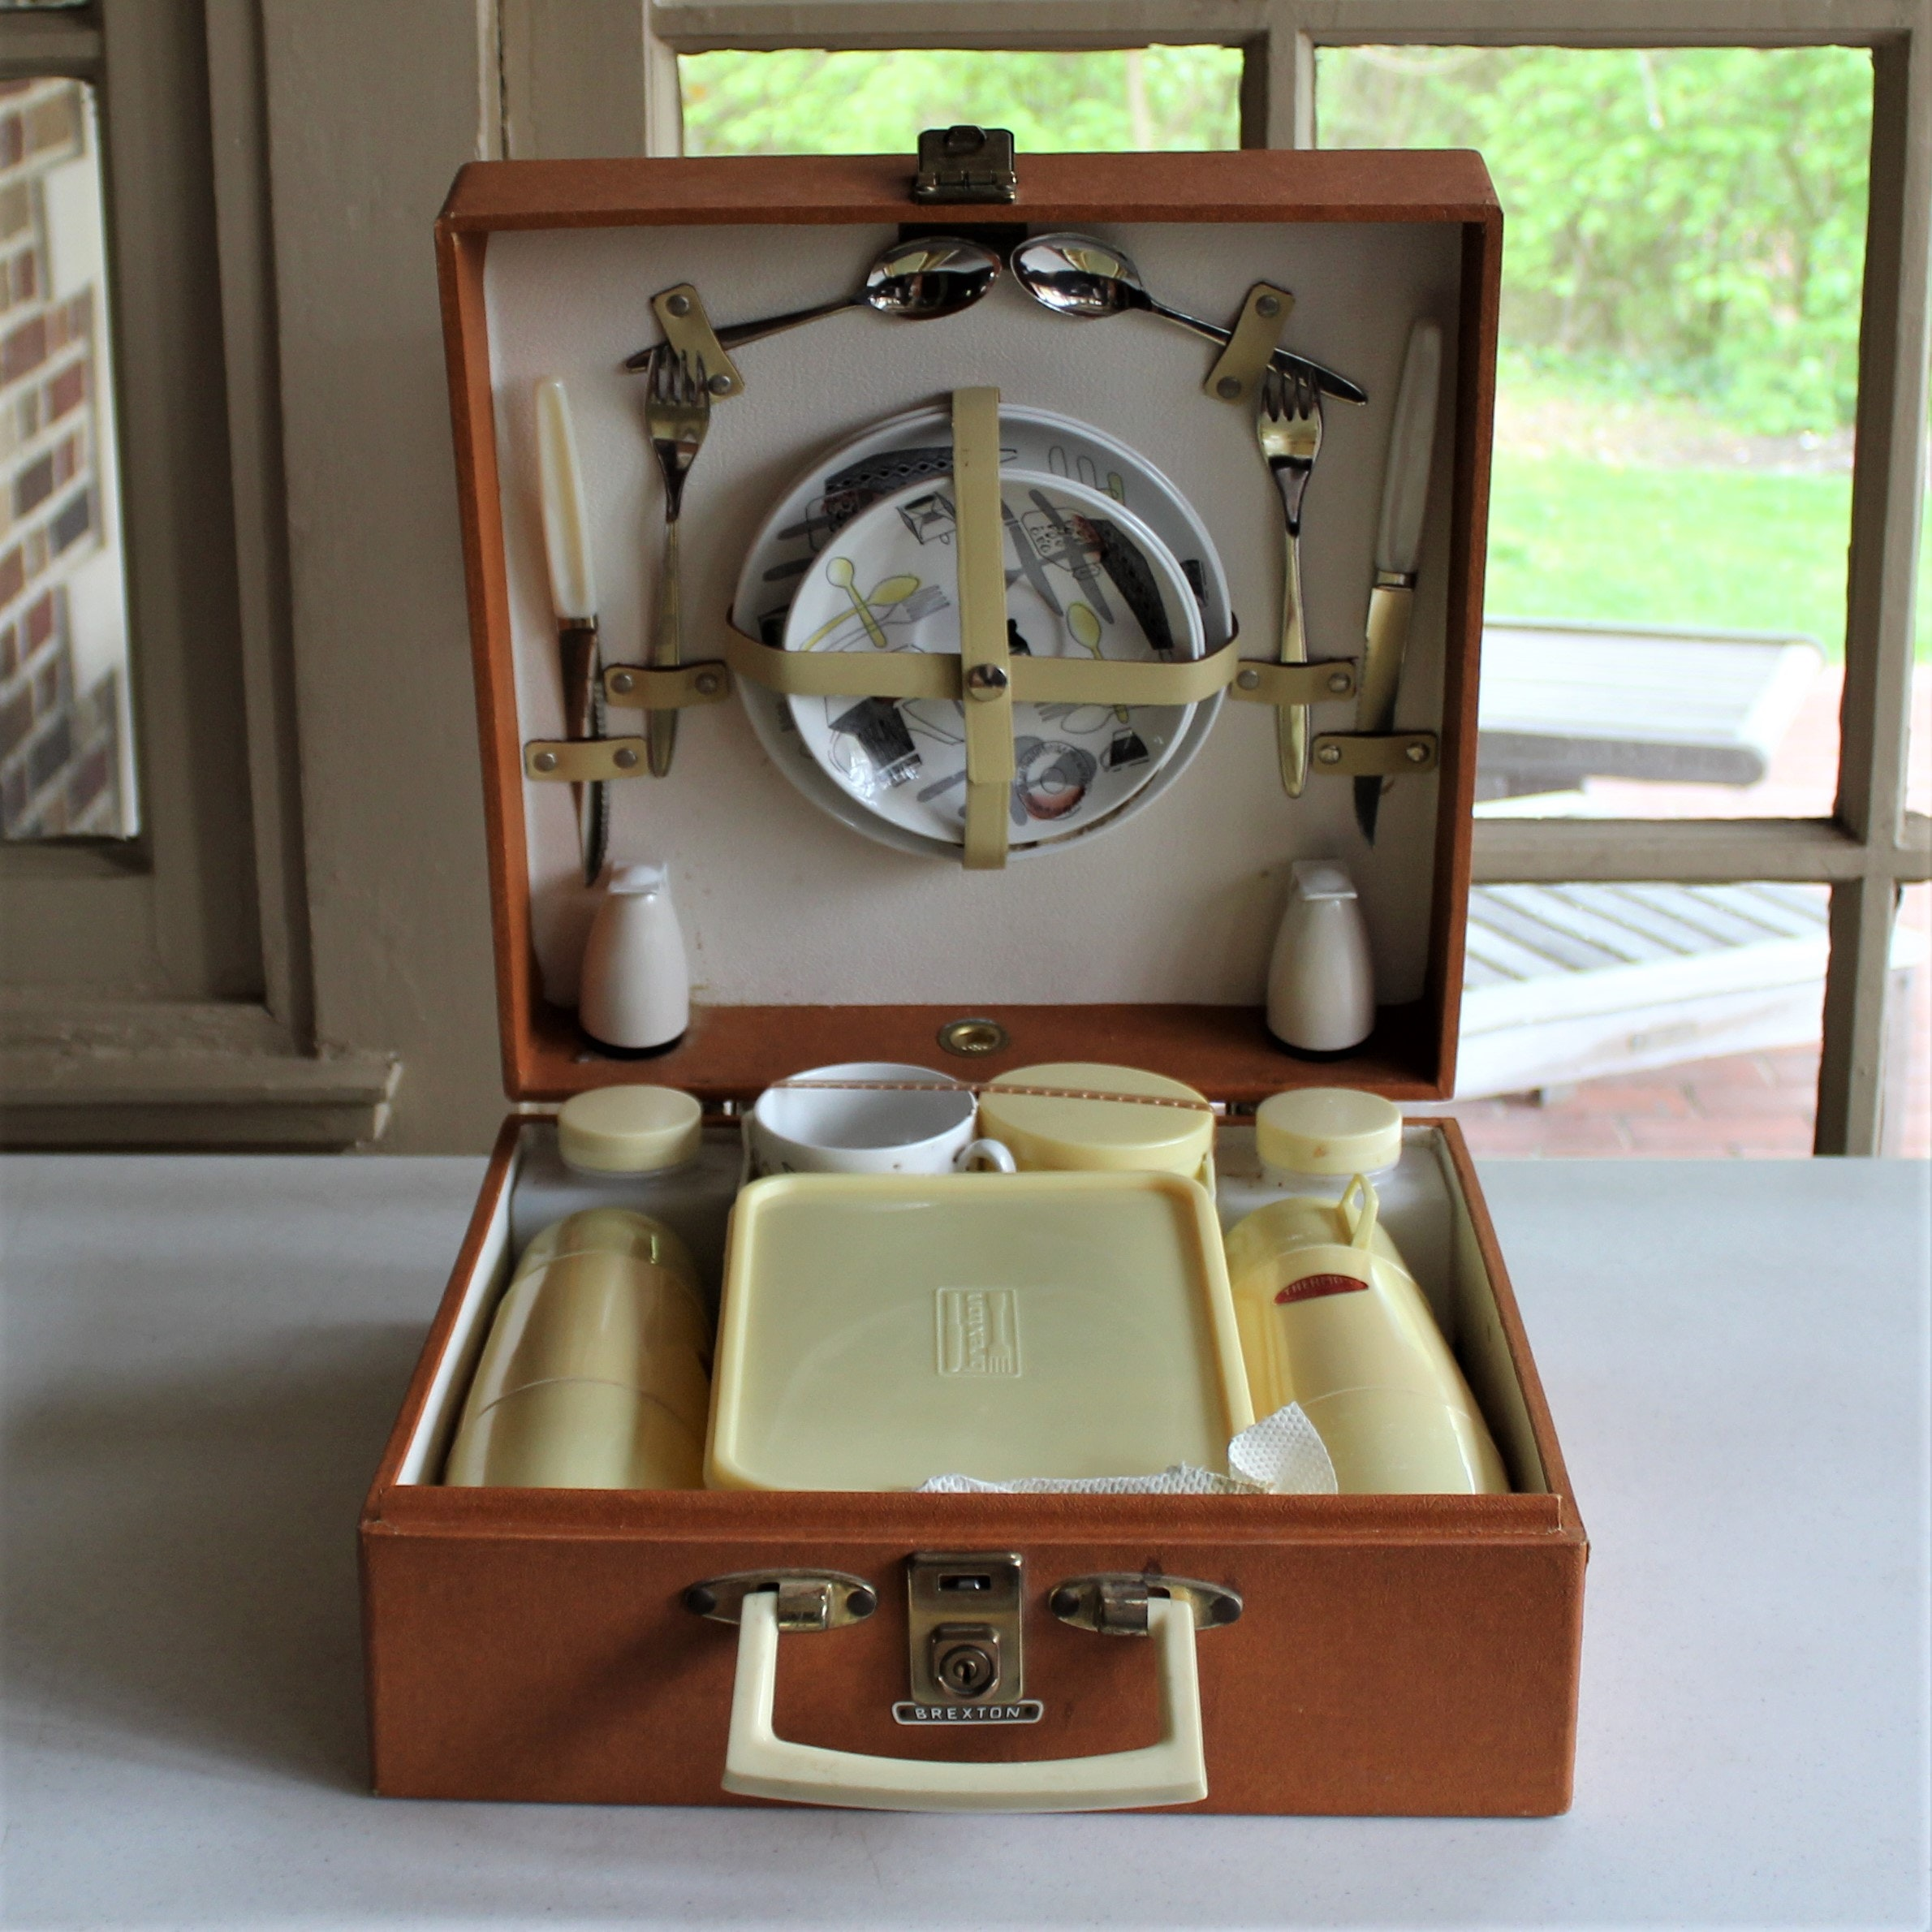 1950s Brexton Picnic Set for Two